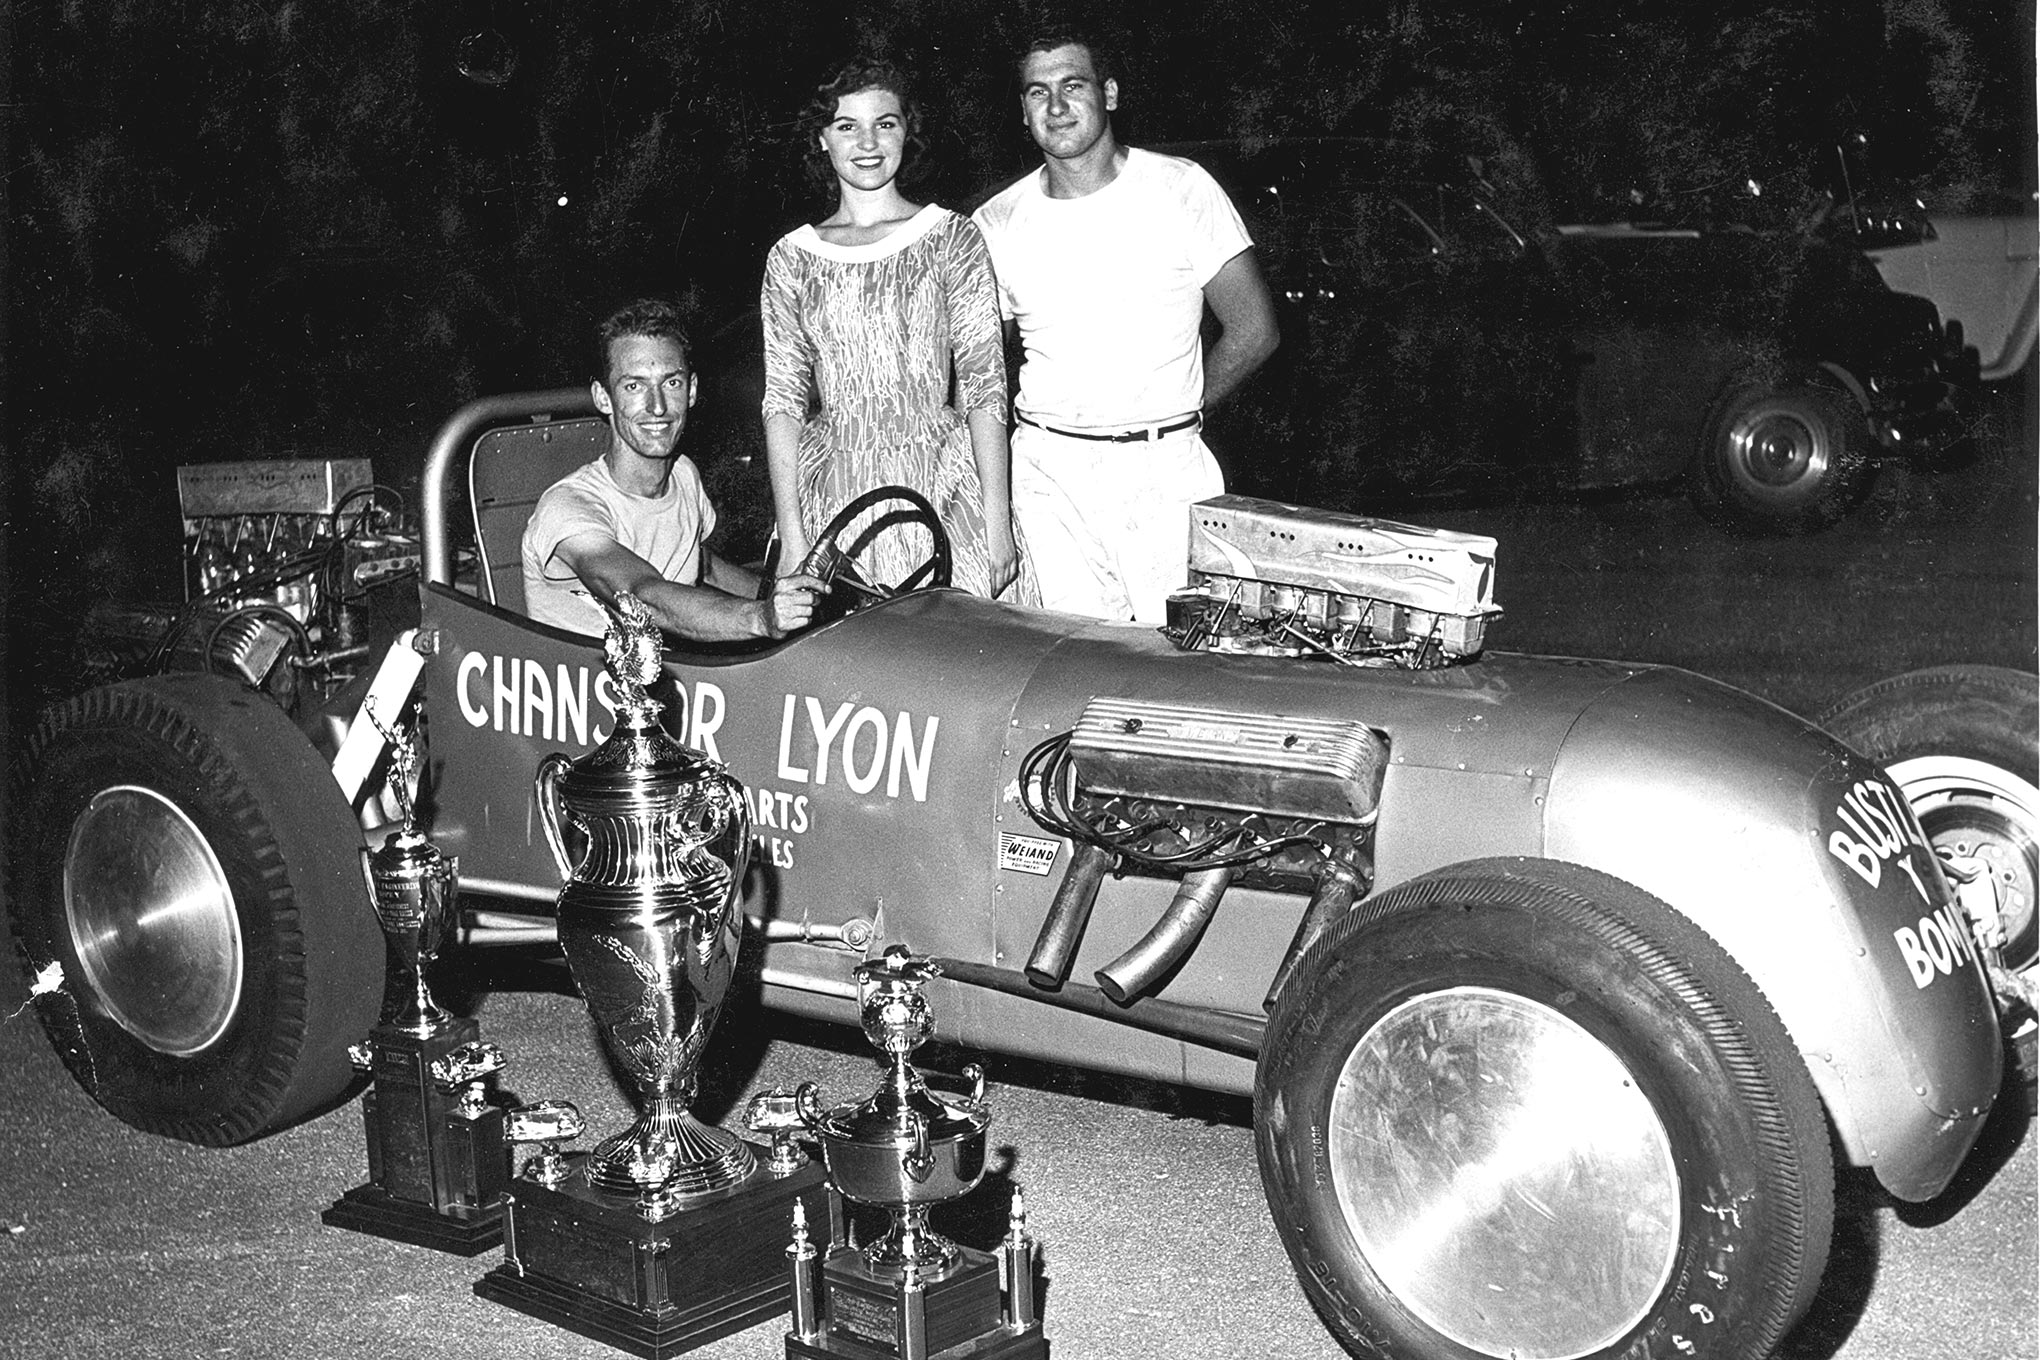 Scotty and Goldberg showing off the gold at Lawrenceville. The woman is ATAA queen Diane Daniggelis. The center trophy is the Maremont trophy for top speed. The Champion Spark Plug trophy for Top Eliminator sits to the right.